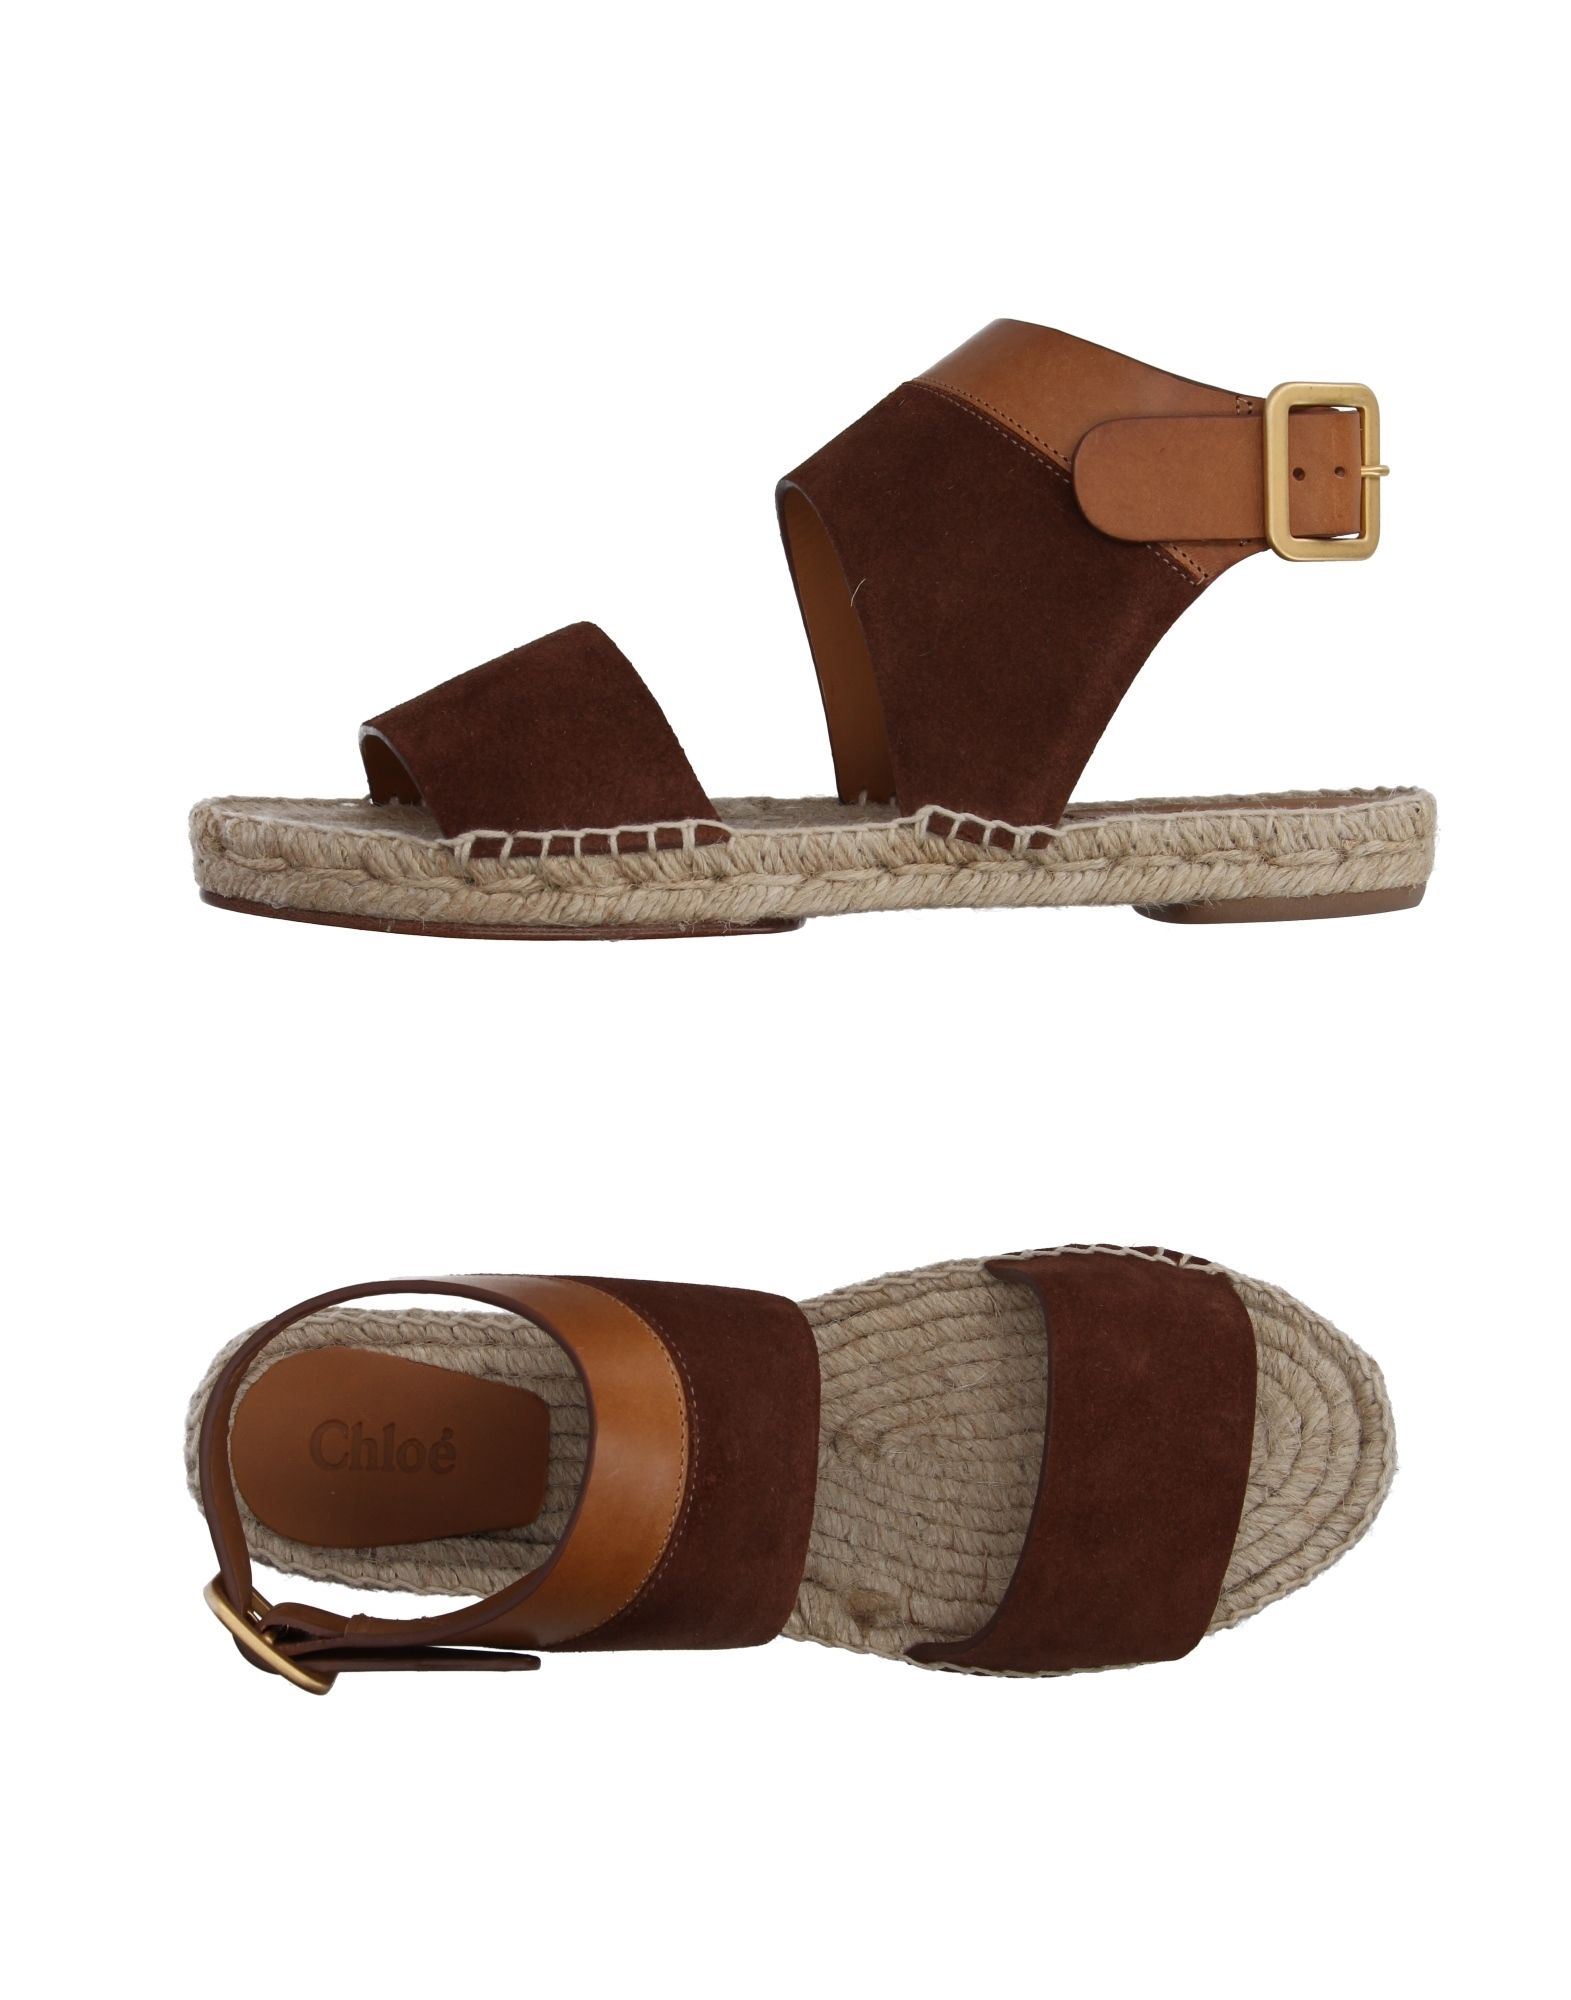 CHLOÉ Espadrilles. stitching, two-tone pattern, round toeline, leather sole, cuban heel, leather lining, buckle, sueded effect, contains non-textile parts of animal origin. Soft Leather